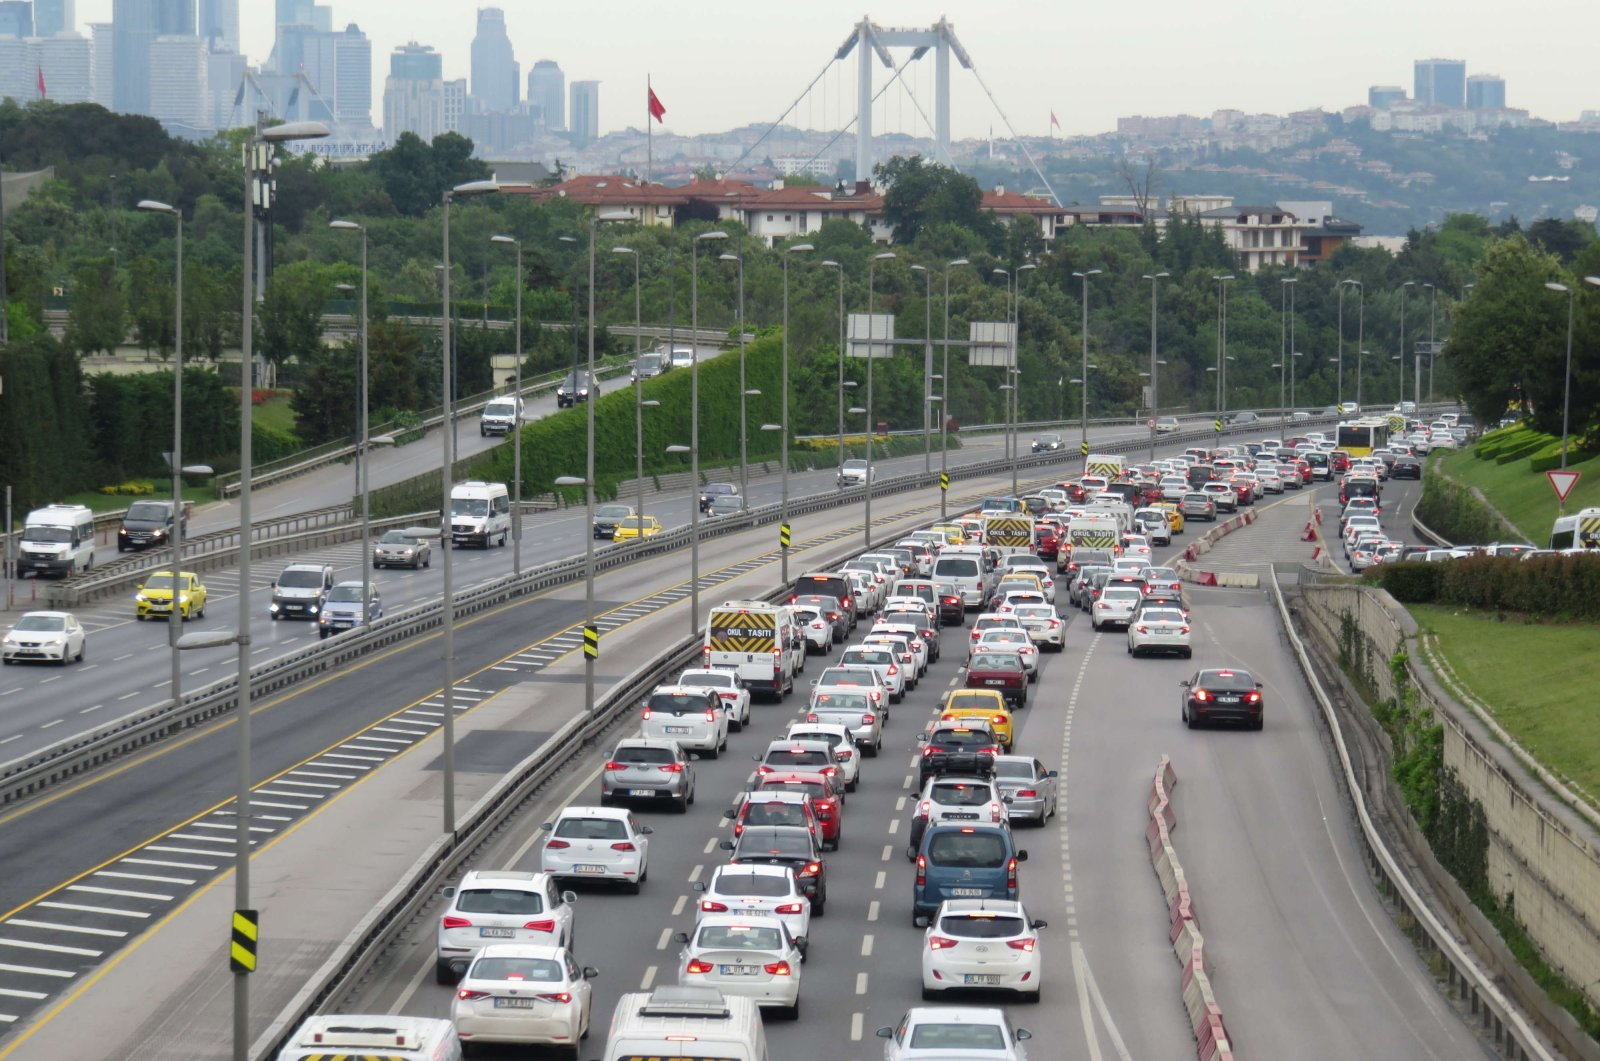 Cars on a highway near the July 15 Martyrs Bridge, formerly known as the Bosporus Bridge, Istanbul, June 2, 2020. (DHA Photo)